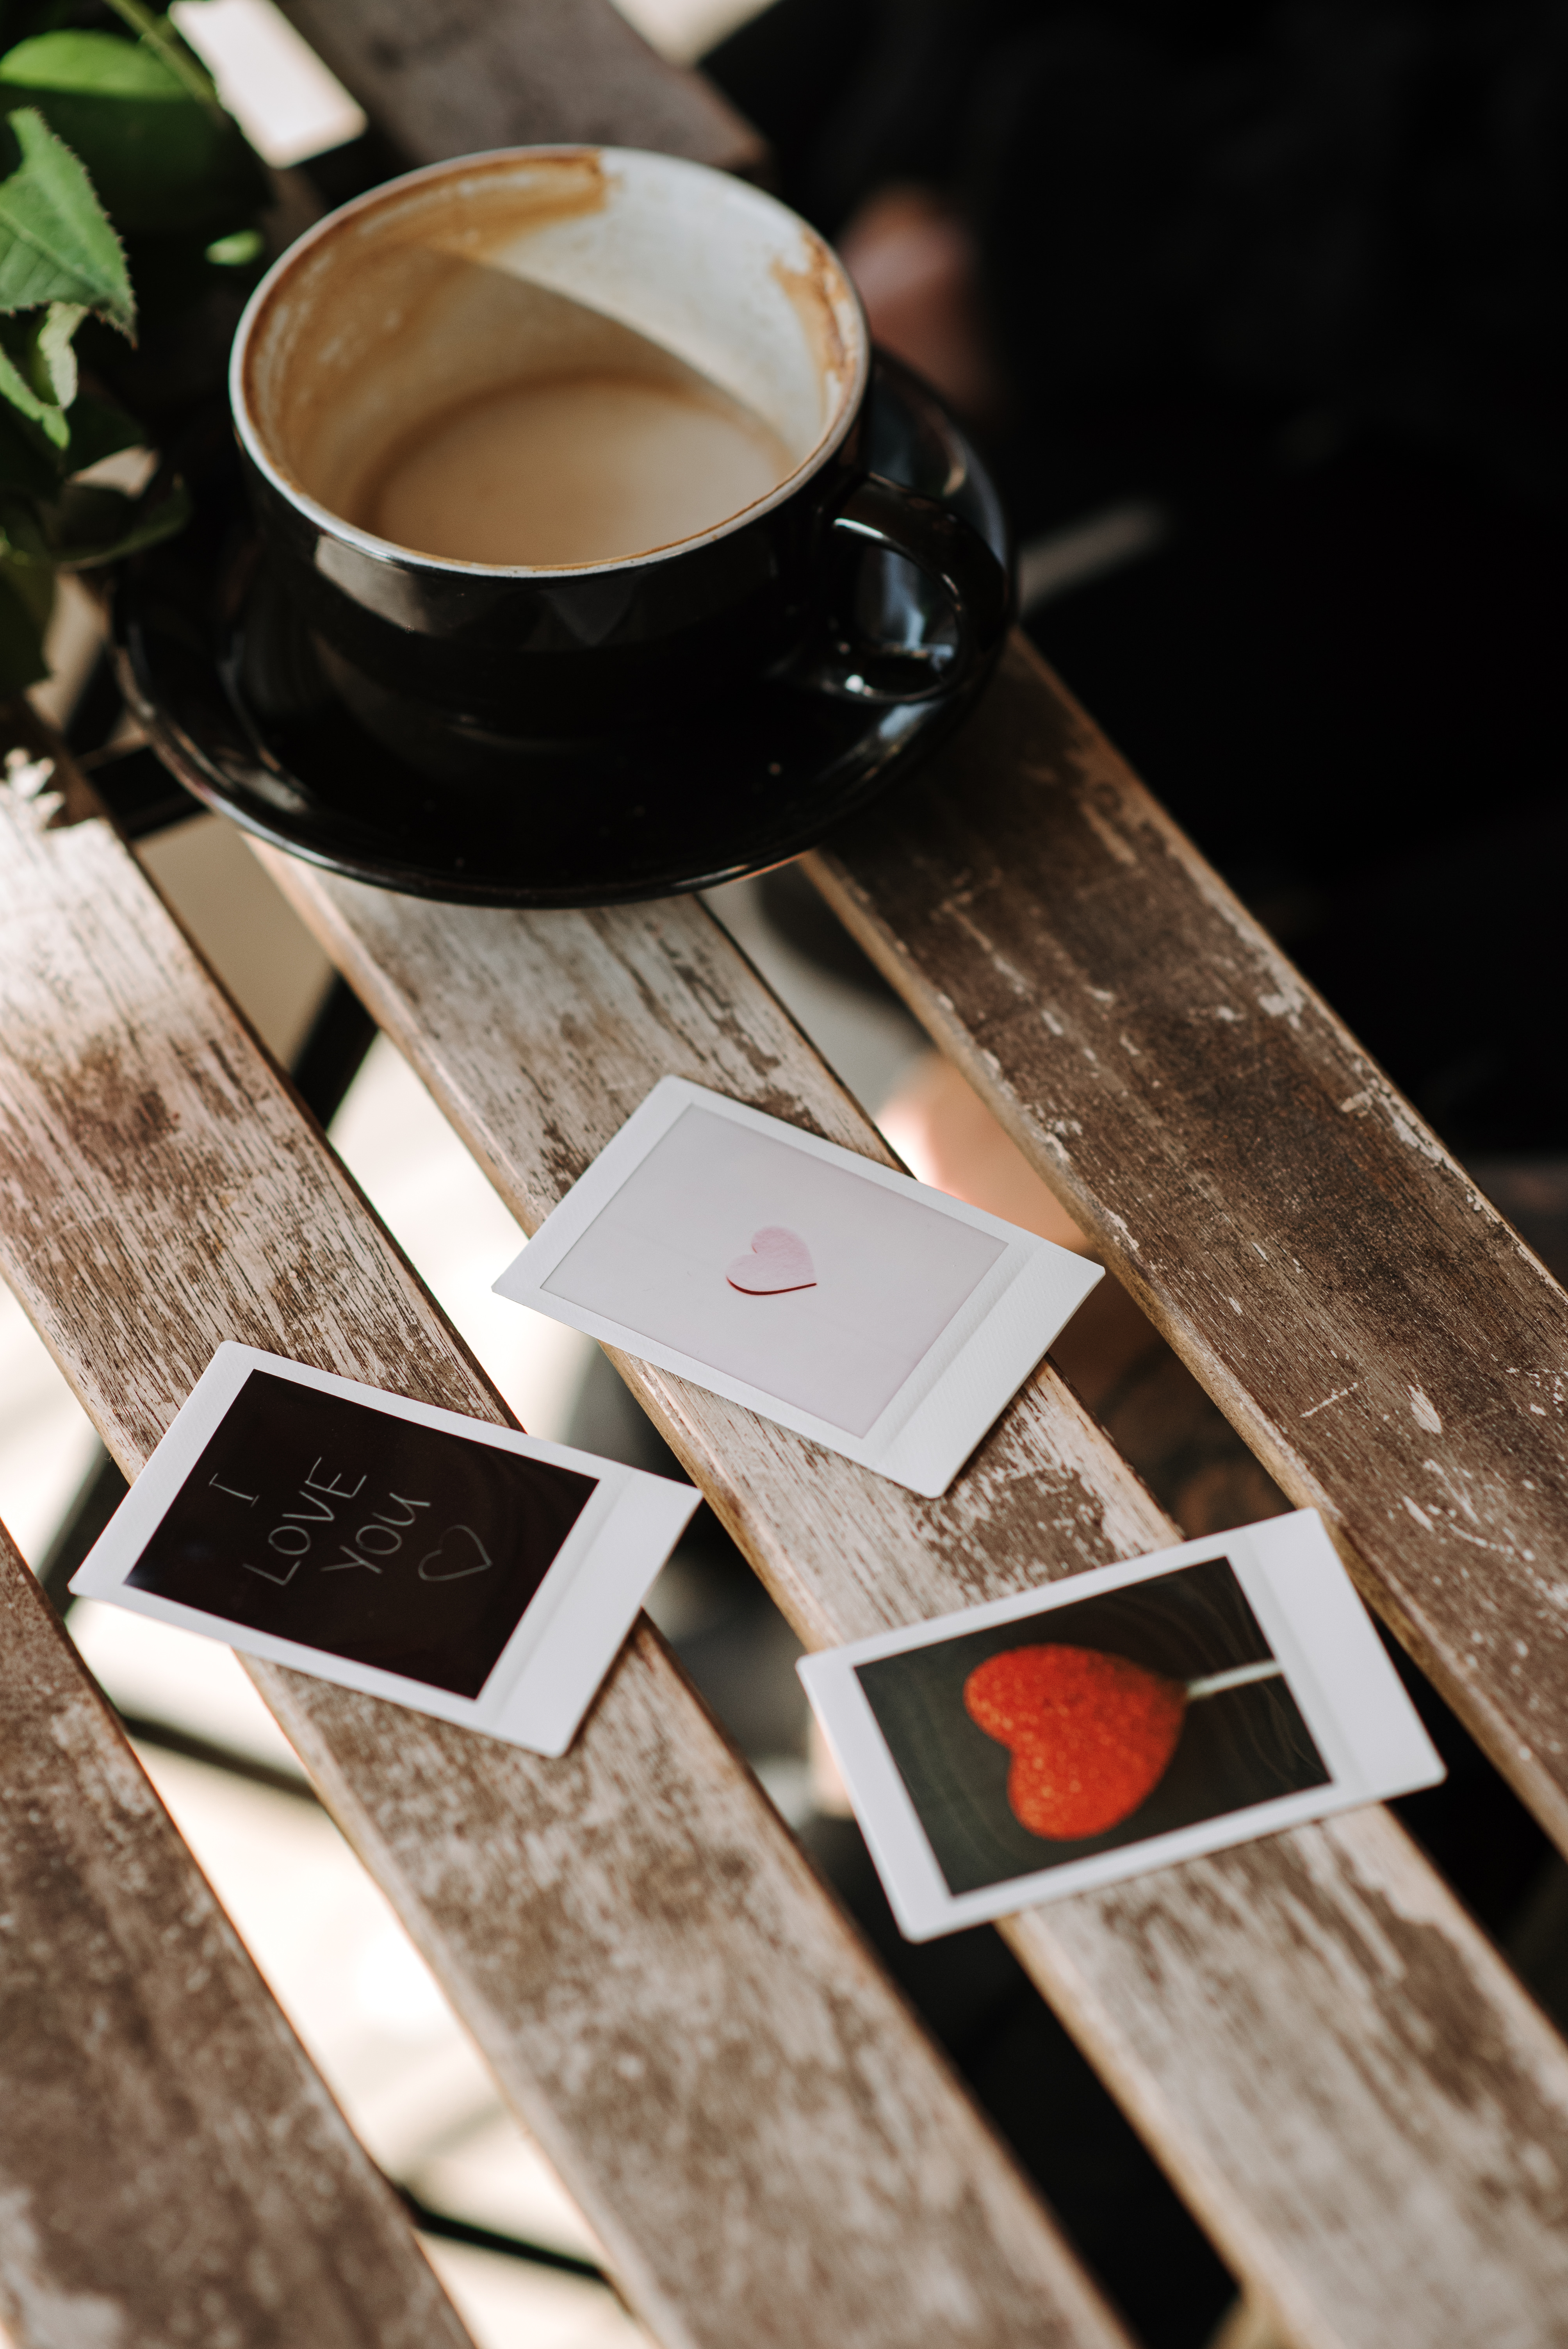 assorted instant photos with heart symbols near cup of cappuccino